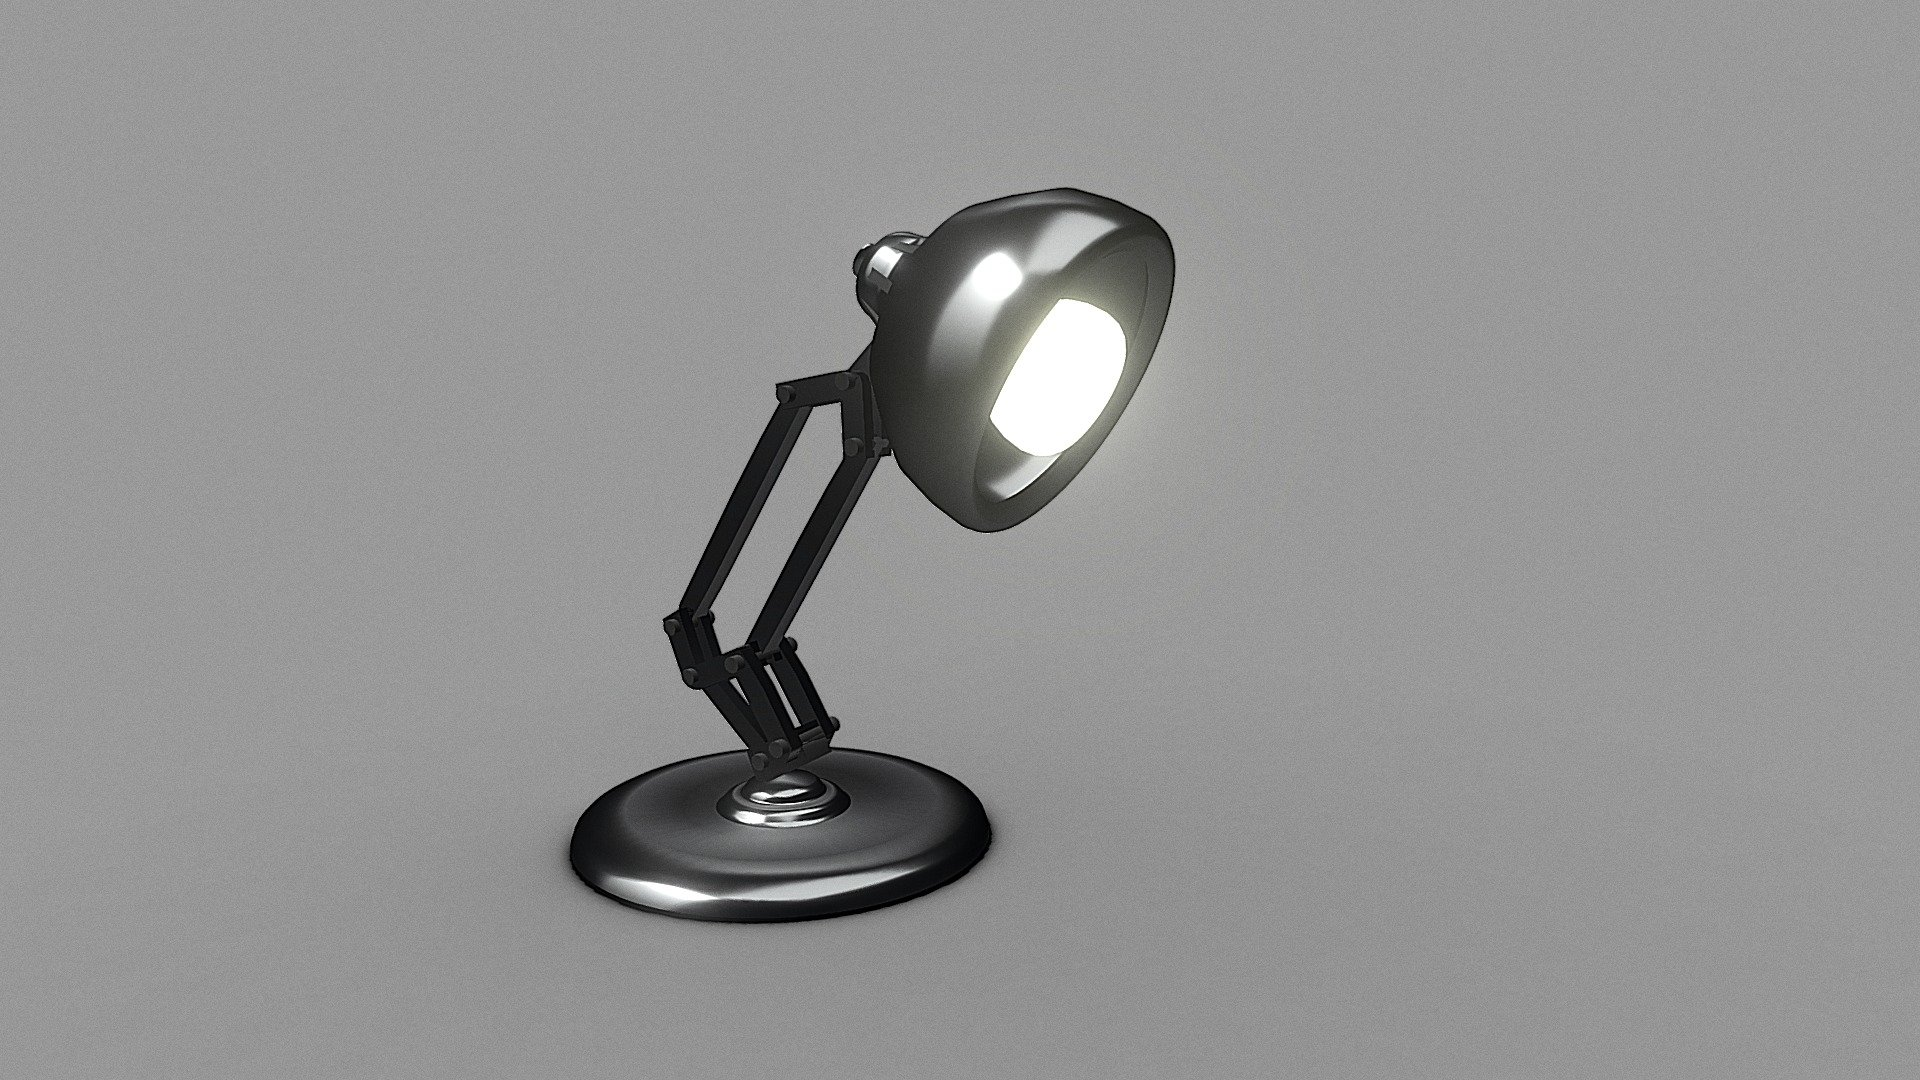 Pixar lamp - Download Free 3D model by alban (@alban)